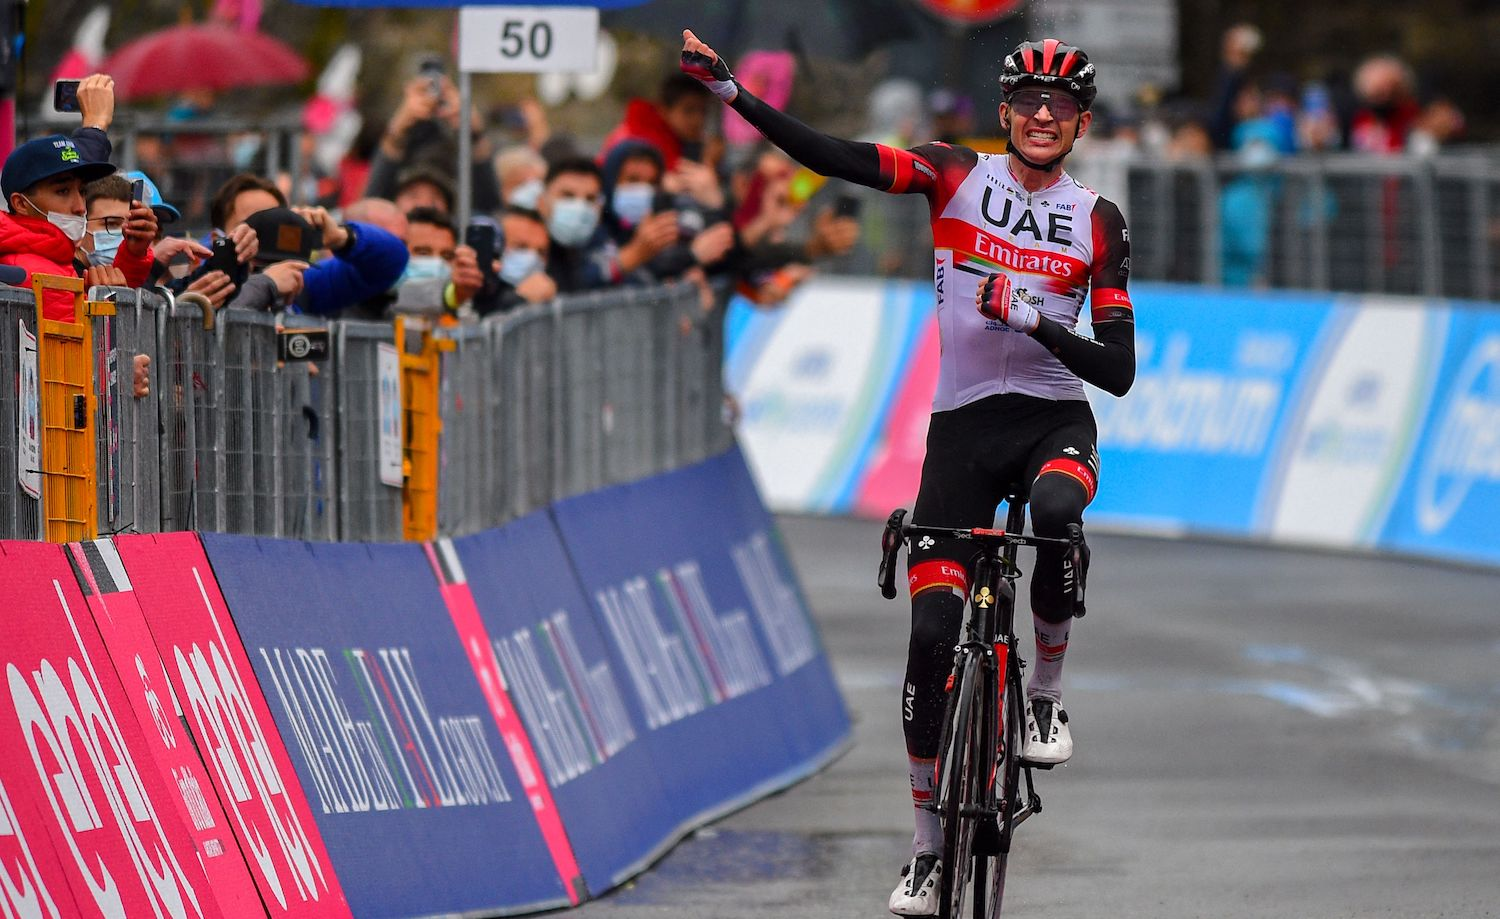 Team UAE Emirates rider US Joe Dombrowski celebrates as he crosses the finish line to win the fourth stage of the Giro d'Italia 2021 cycling race, 187 km between Piacenza and Sestola, Emilia-Romagna, on May 11, 2021. (Photo by Dario BELINGHERI / AFP) (Photo by DARIO BELINGHERI/AFP via Getty Images)